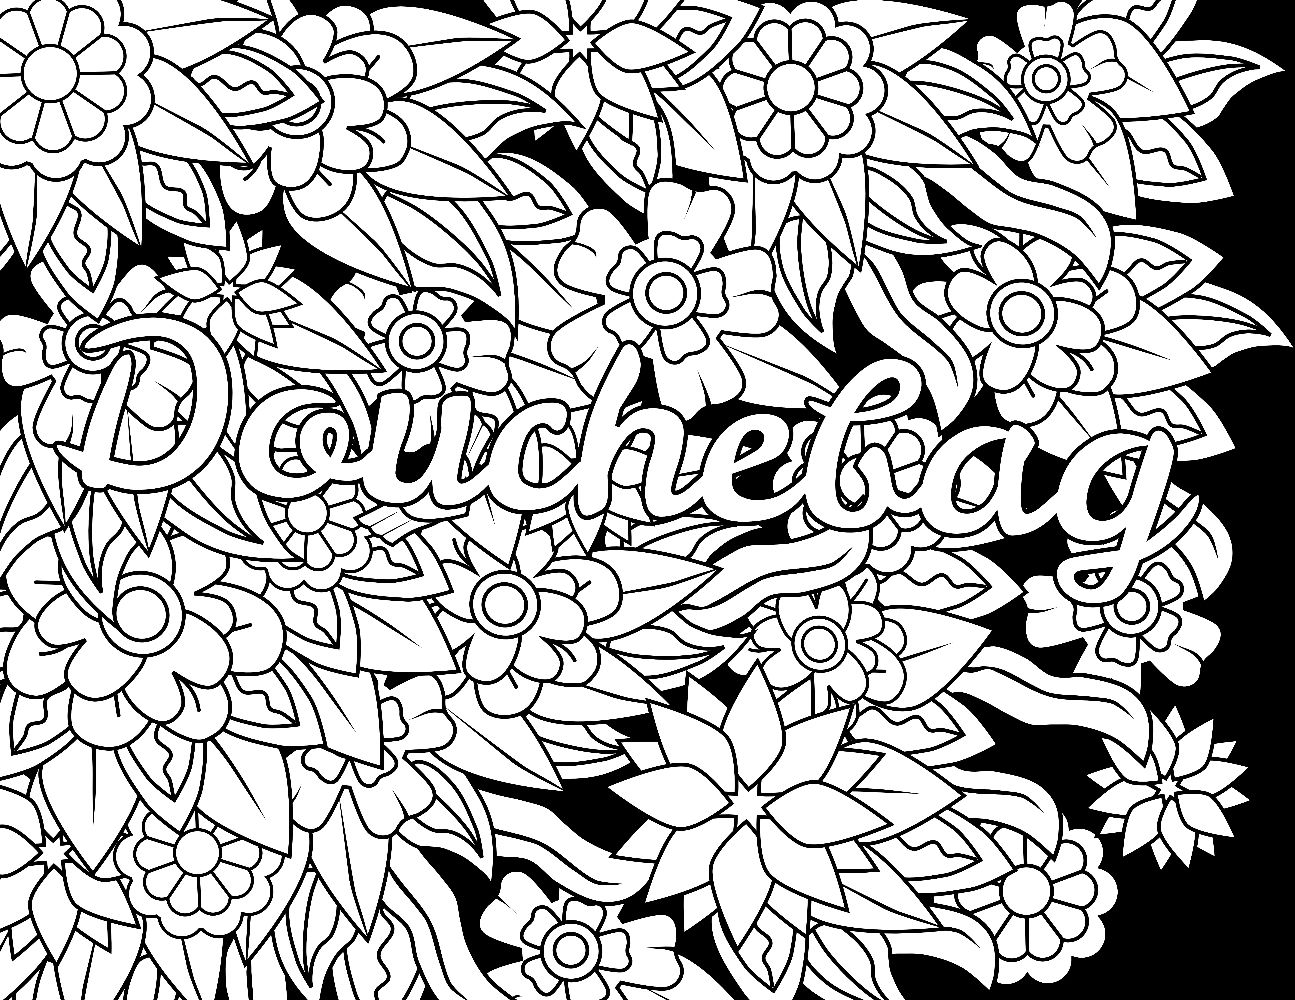 Douchebag - Swear Word Coloring Page - Adult Coloring Page ...